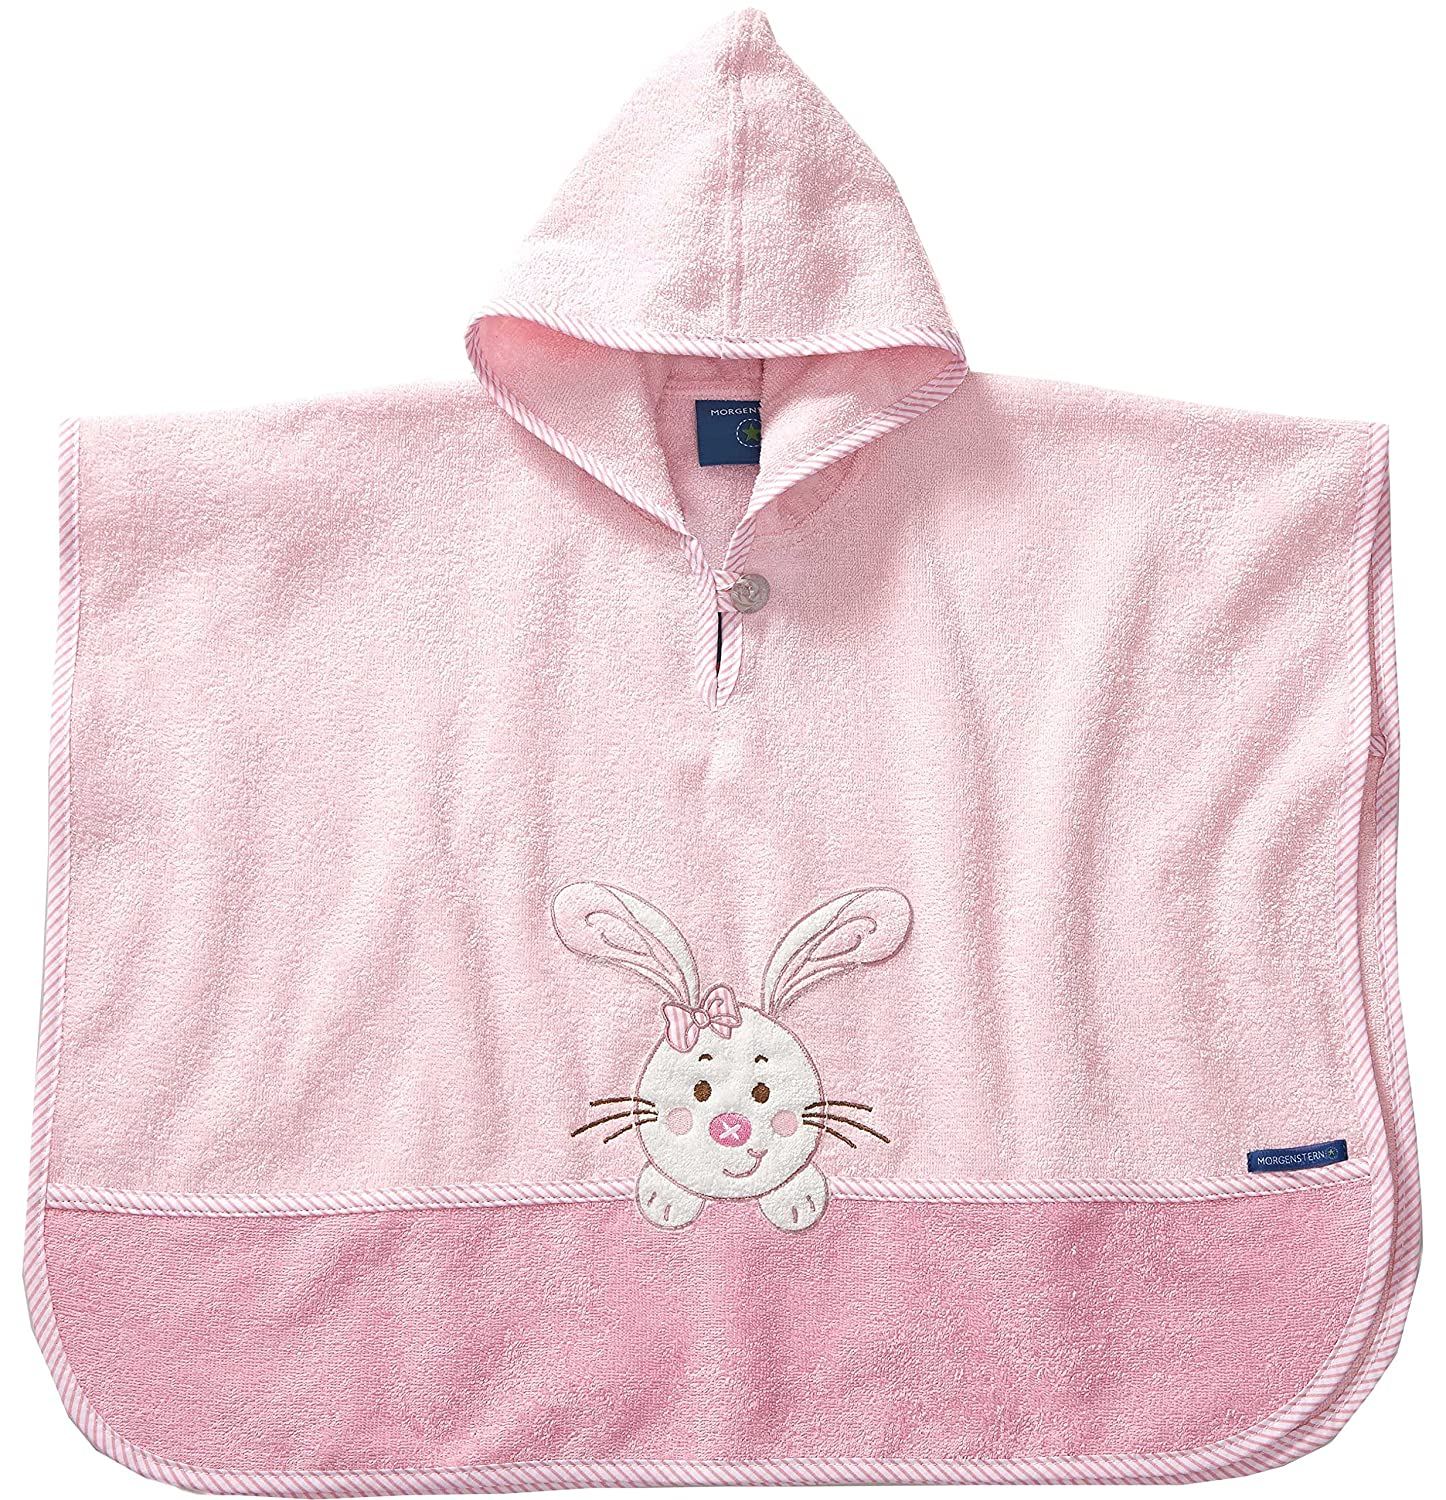 Morgenstern High Quality Childrens Hooded Poncho for Baby ,Toddler, Kids, Bath Beach Towel 1 - 3 yrs. Colour Pink, Bunny Embroidery 8825-09